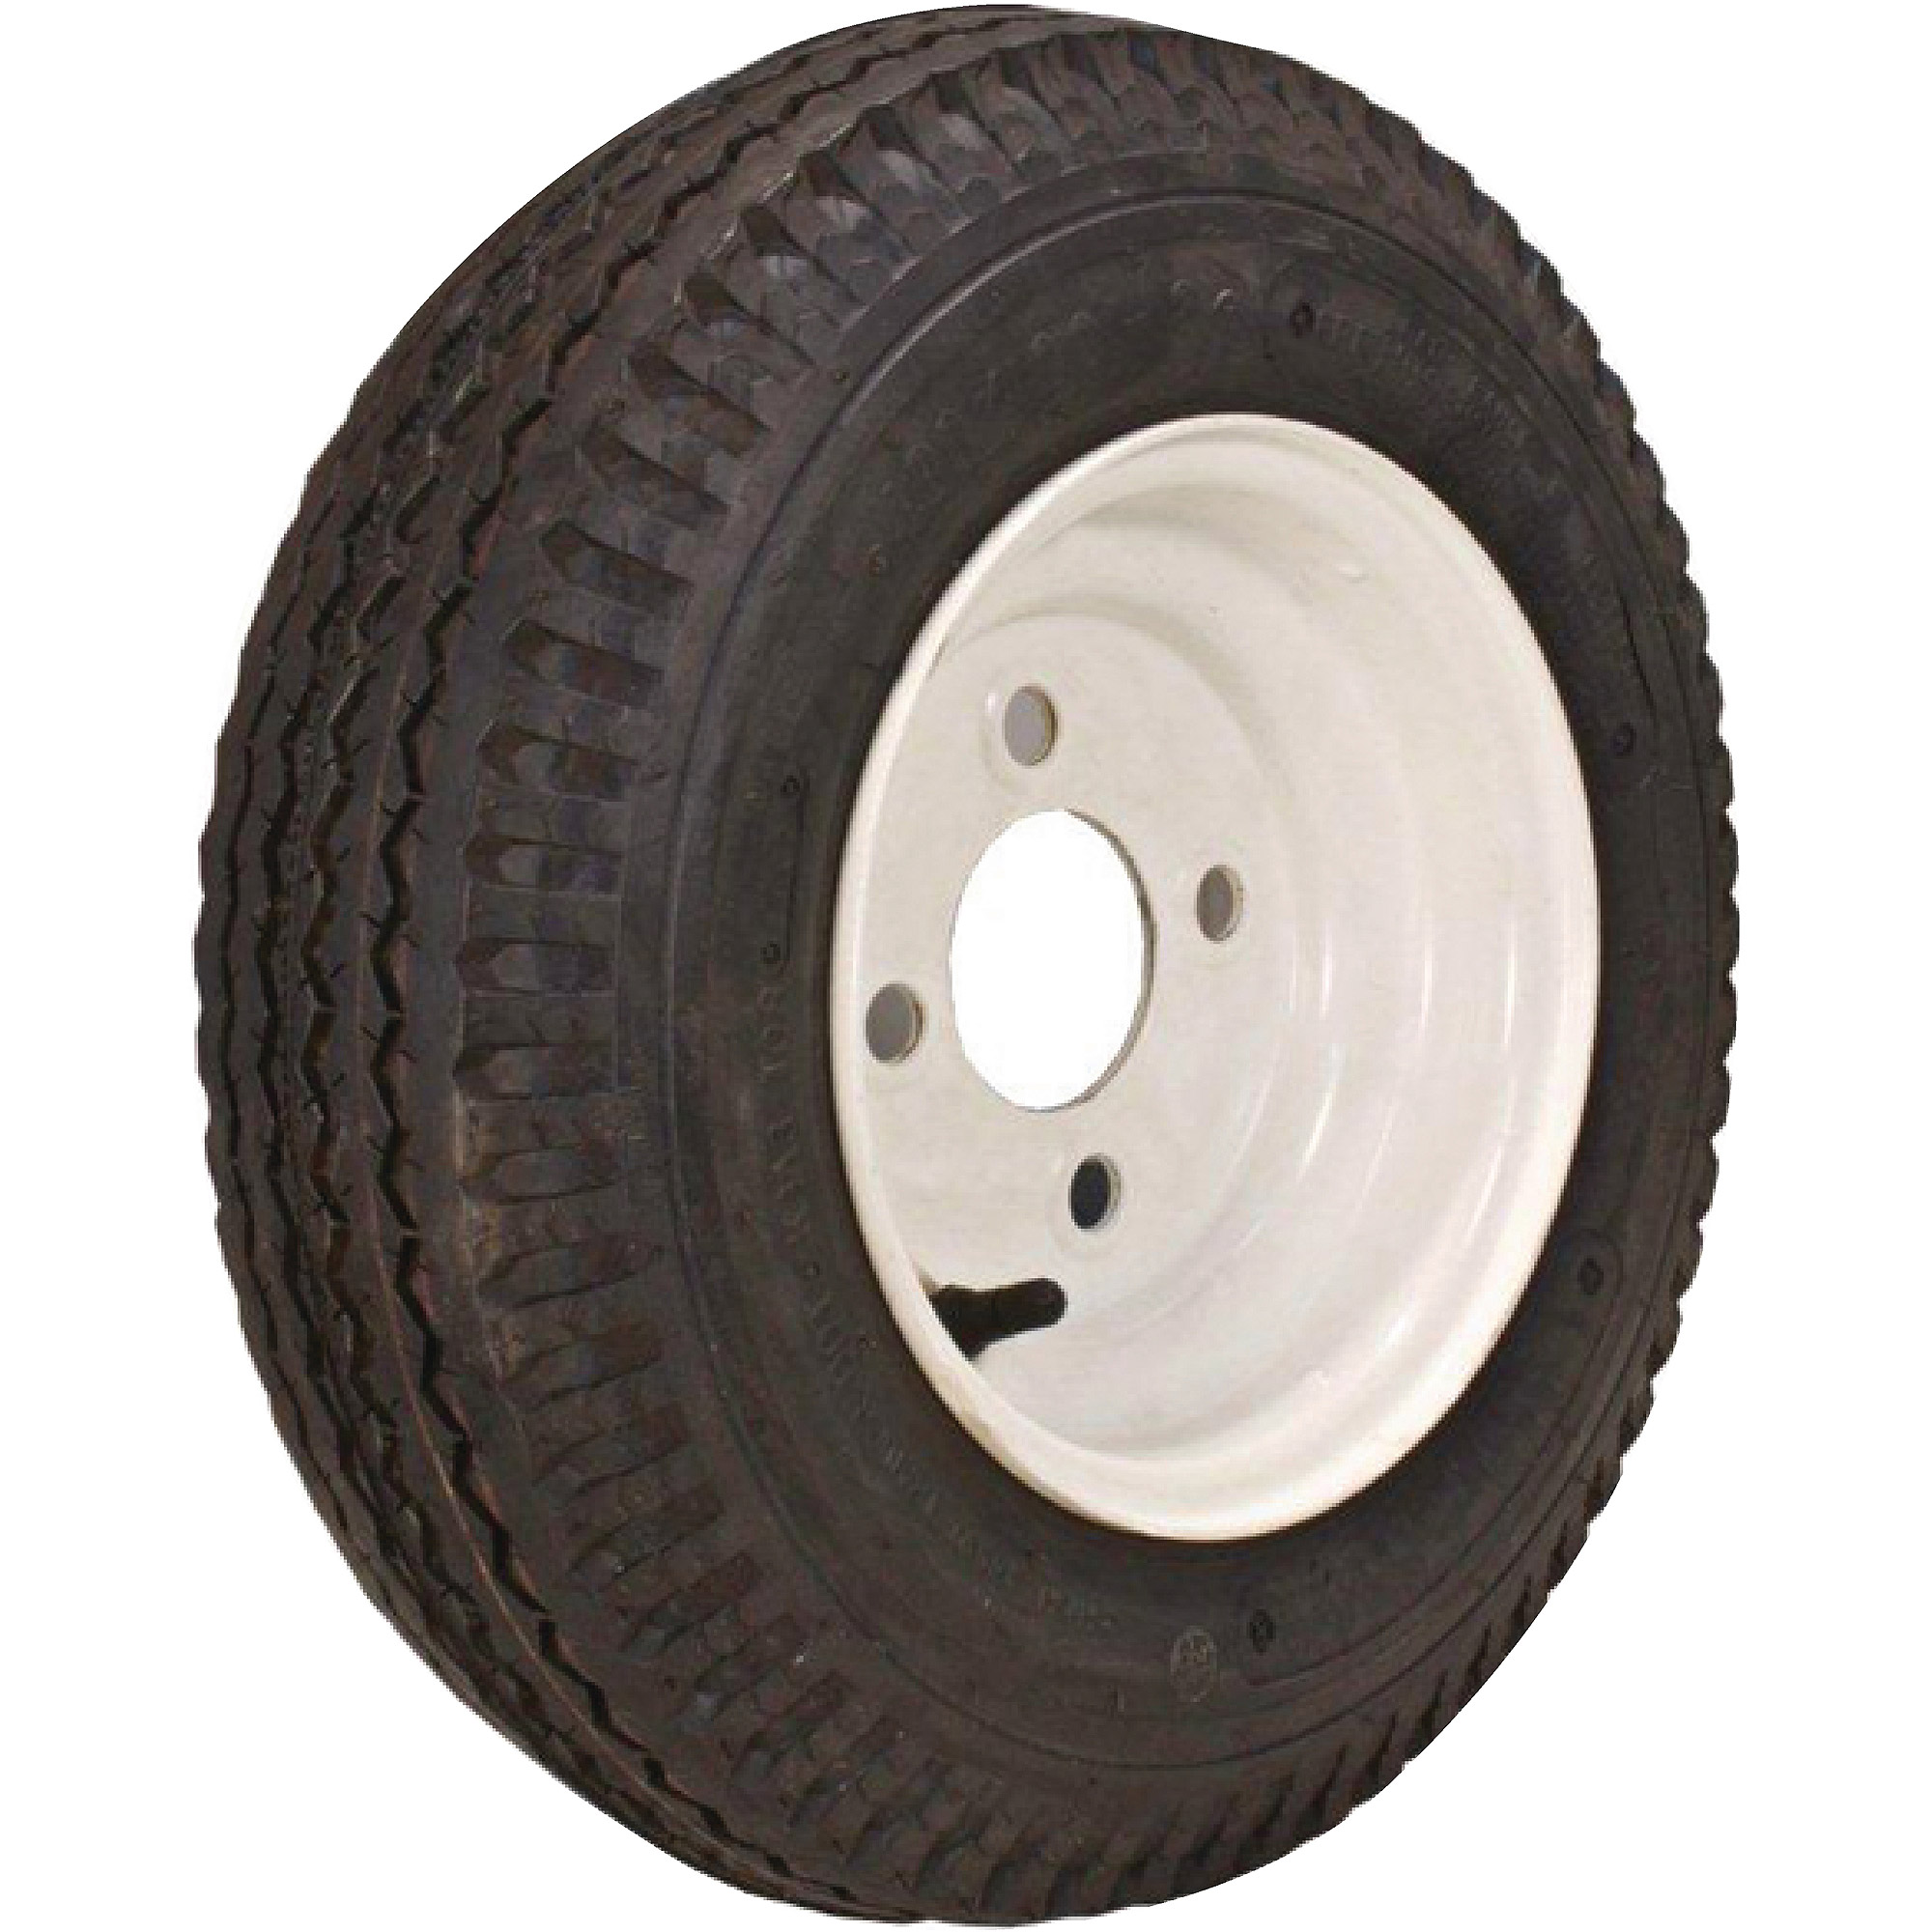 Loadstar Bias Tire and Wheel (Rim) Assembly 570-8 5 Hole 4 Ply